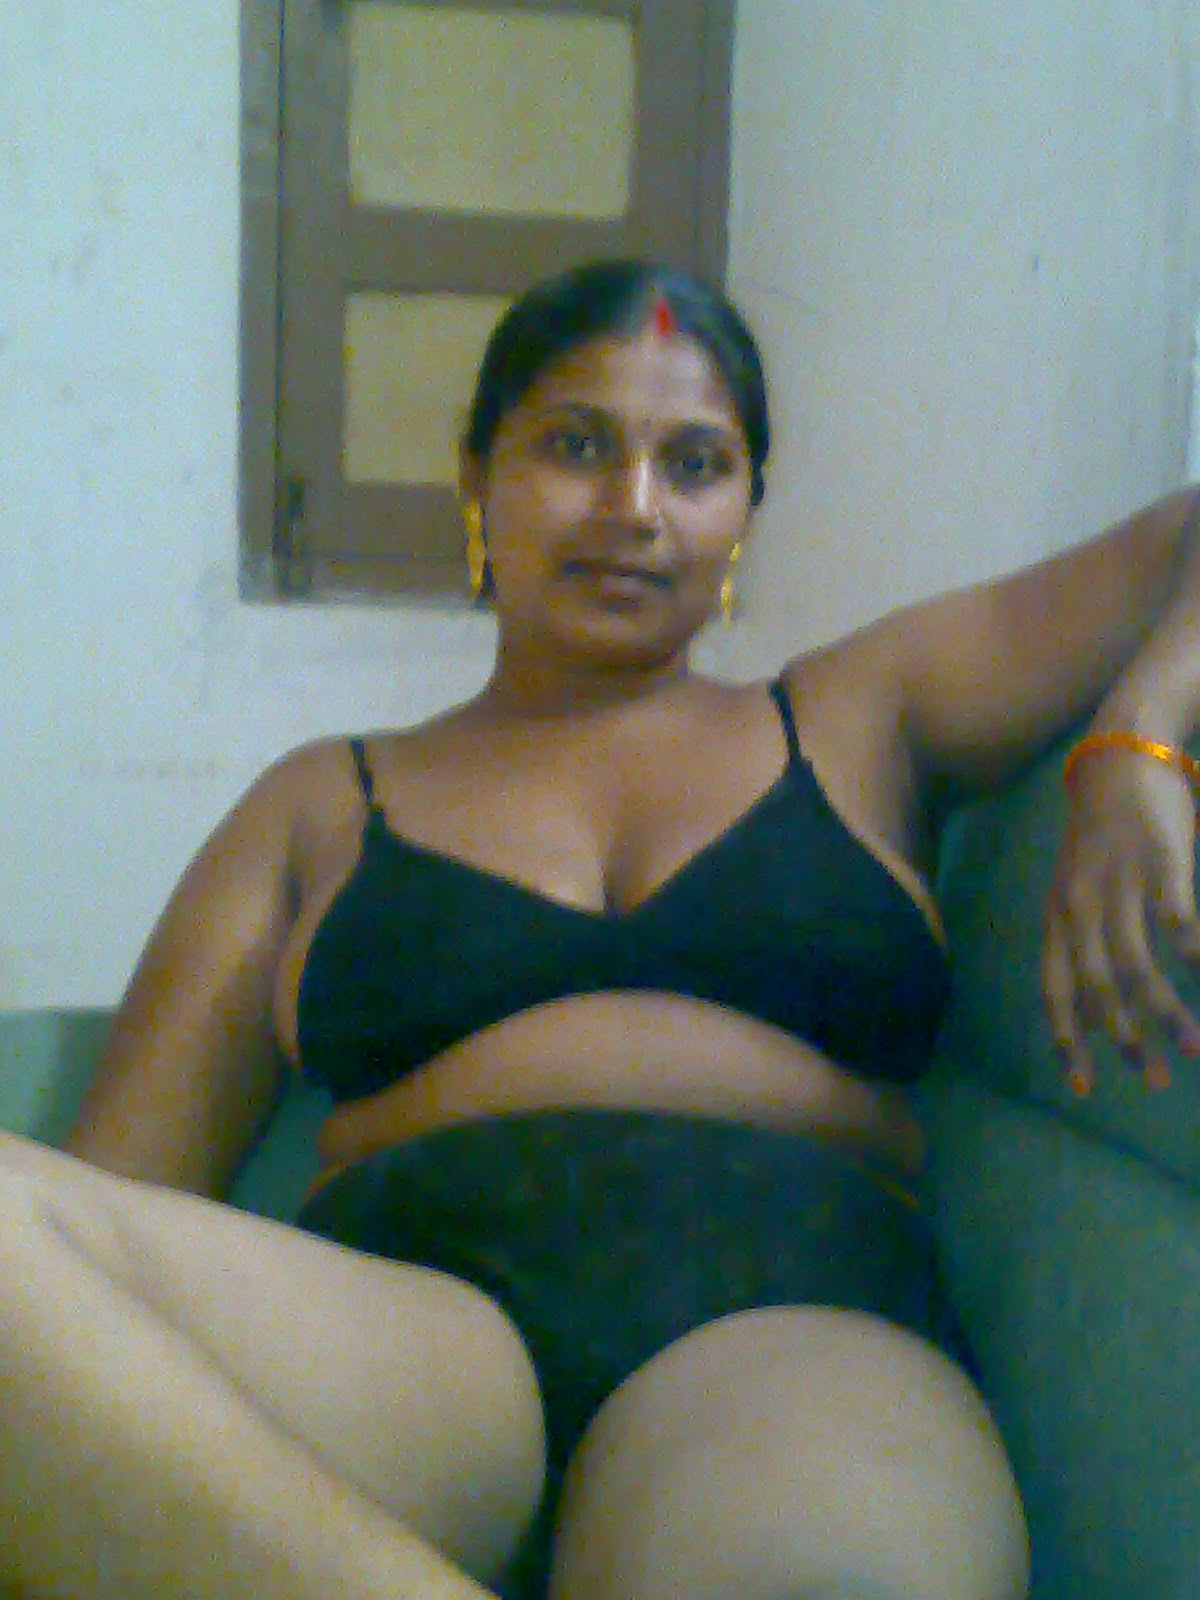 Quickly Indian auntyes hairy pussy photo album curious